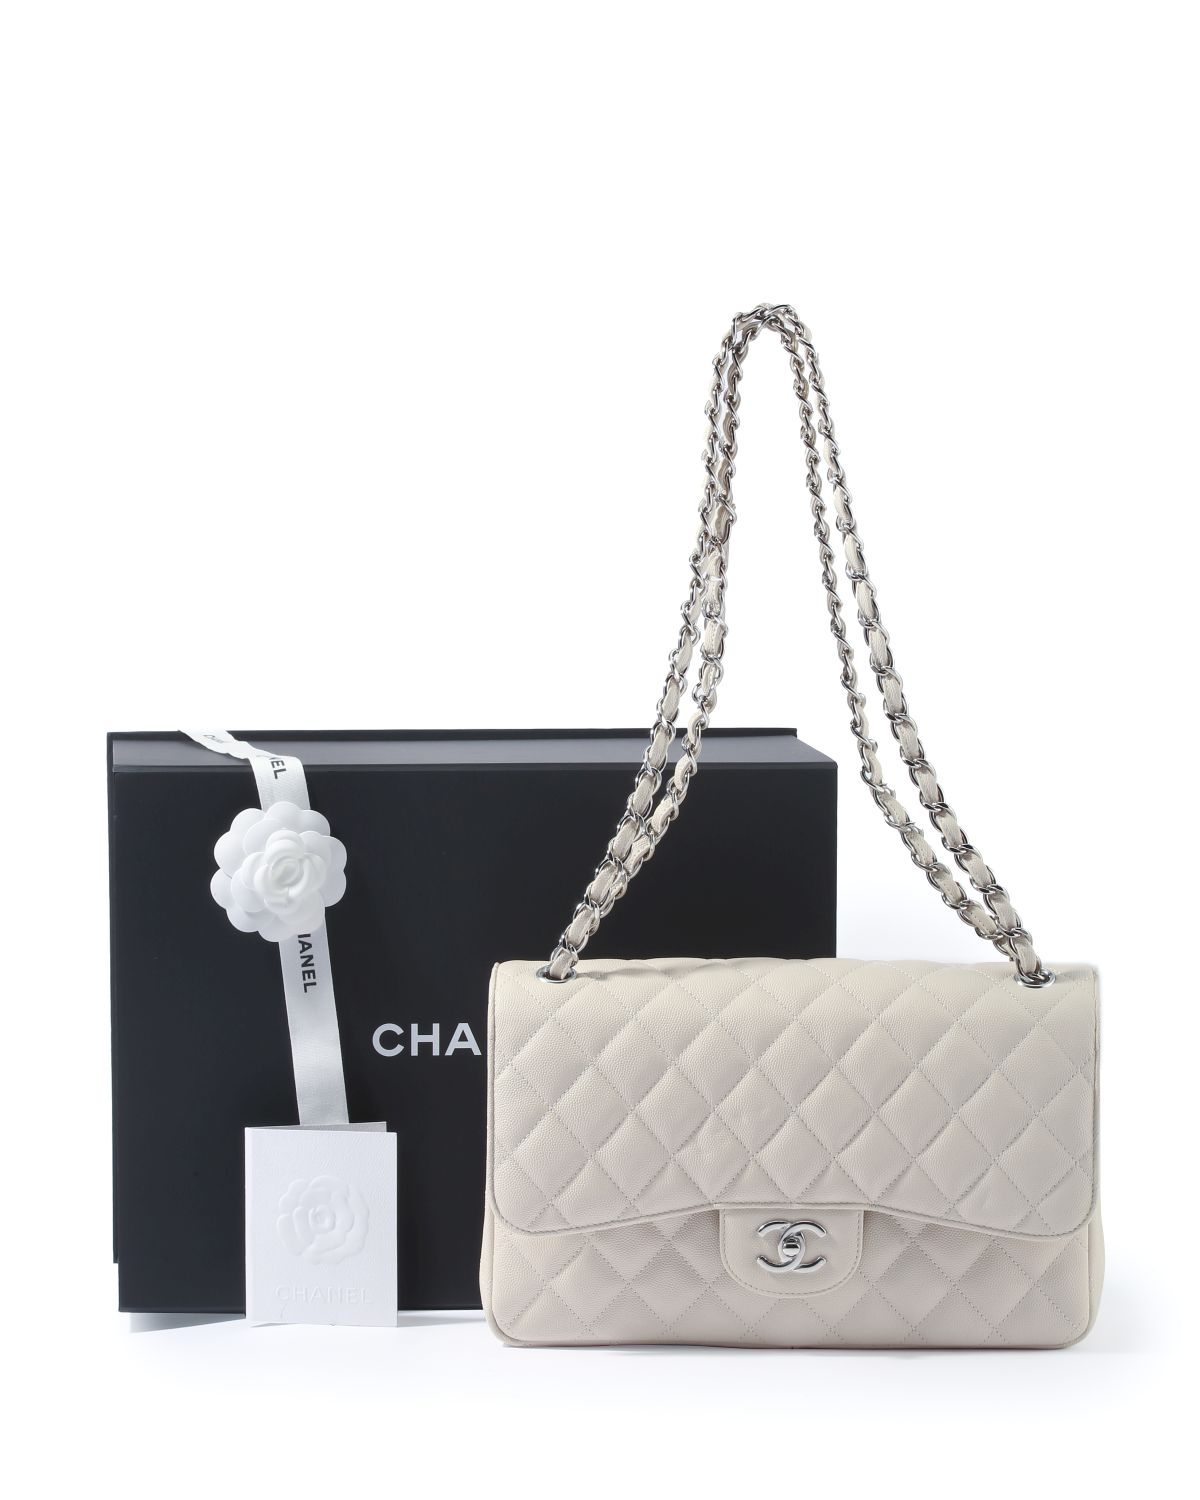 A Chanel Jumbo Classic Flap shoulder bag